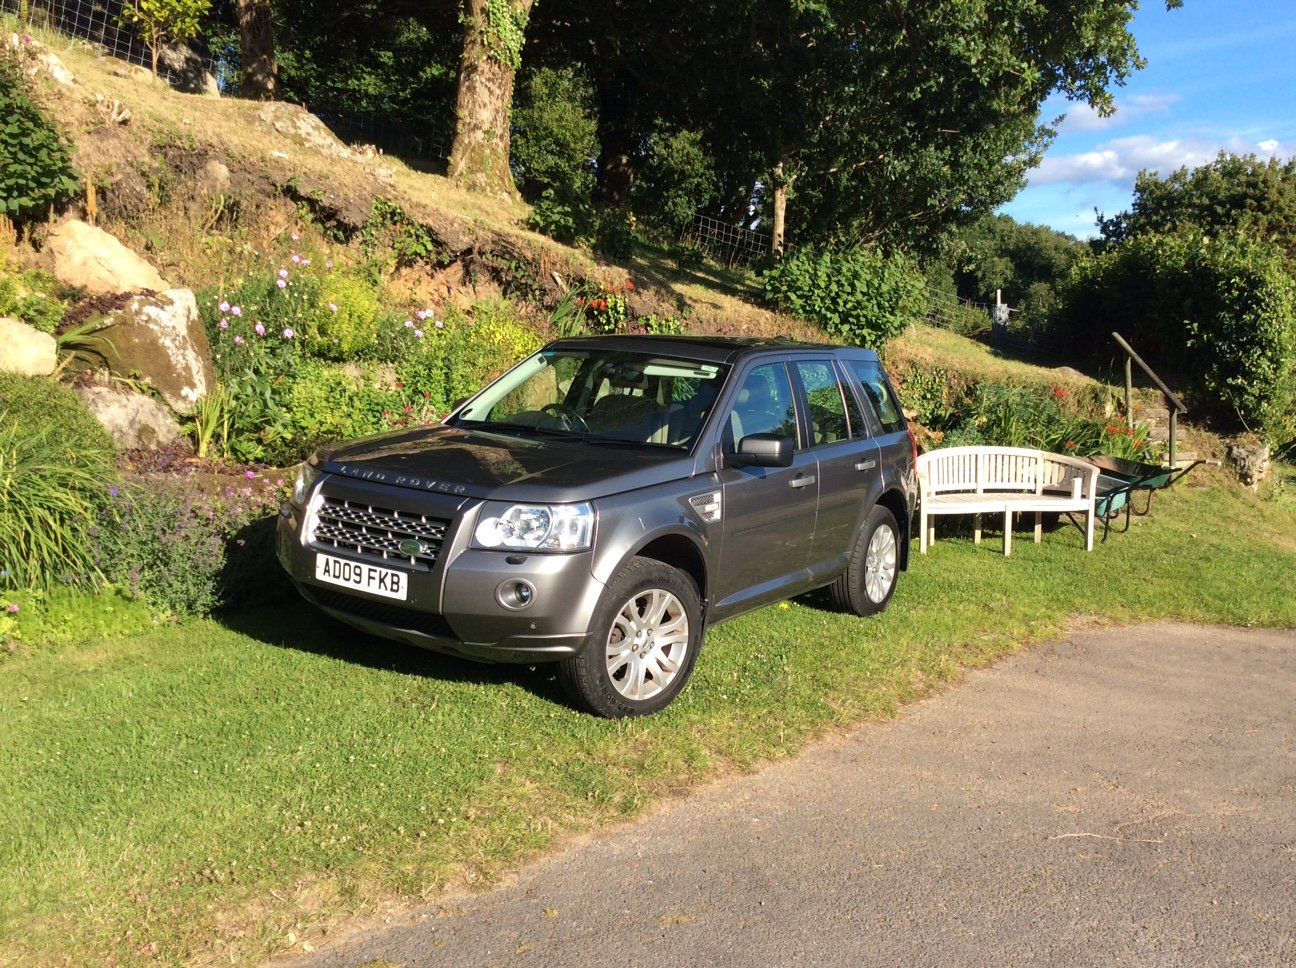 2009 Land Rover Freelander 2 HSE TD4 Auto Diesel, FSH For Sale (picture 1 of 6)